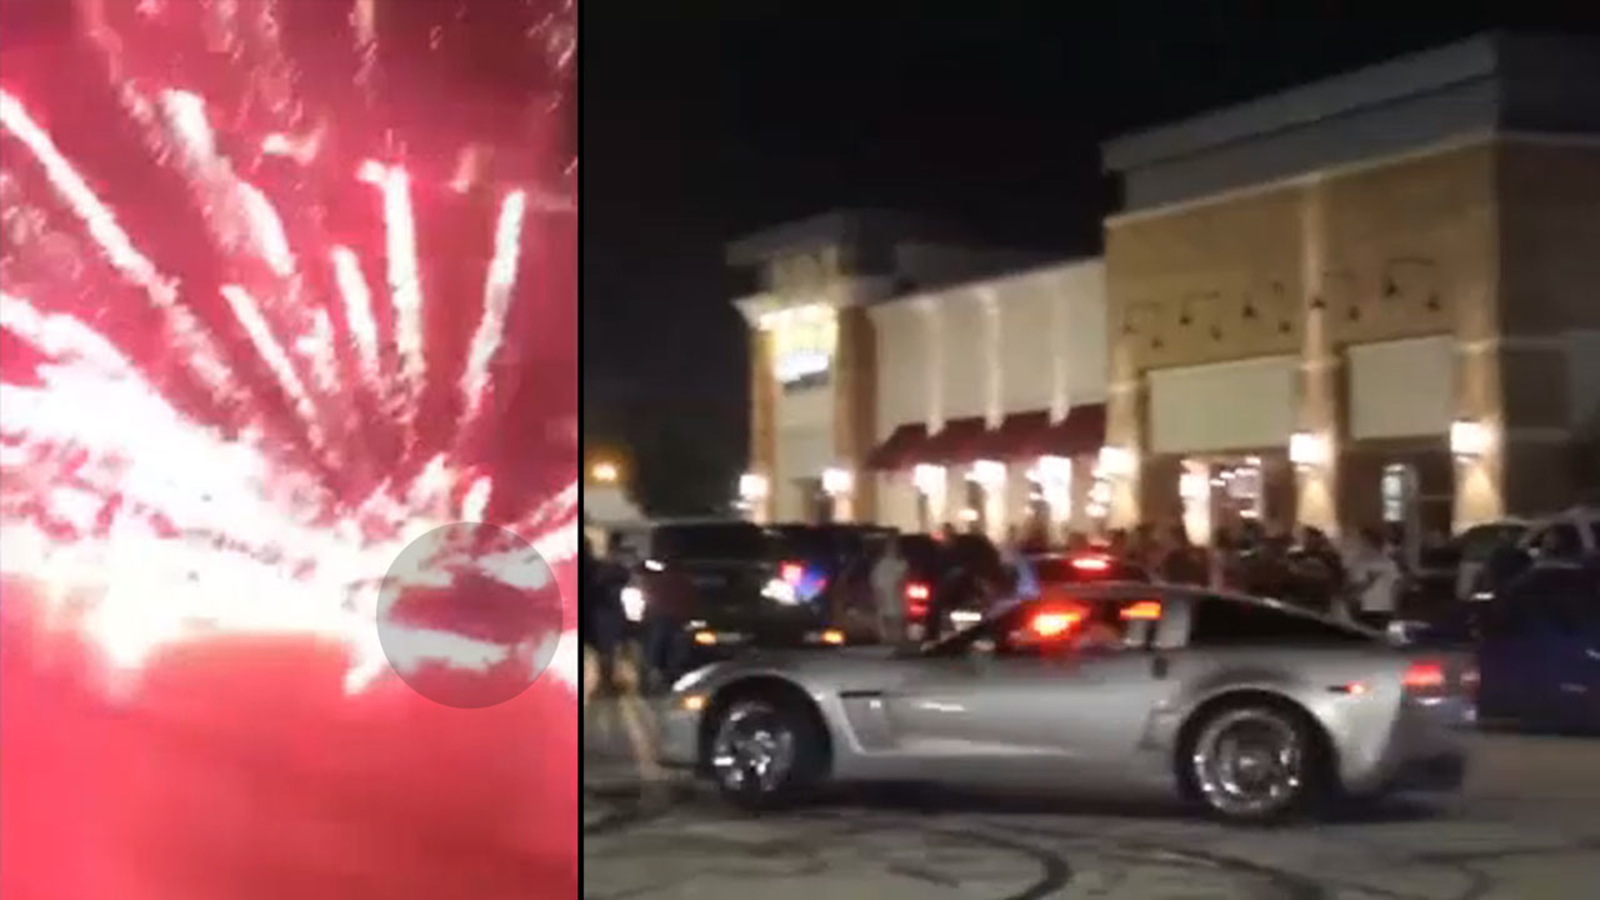 Dozens Take Over Intersection With Car Stunts And Fireworks